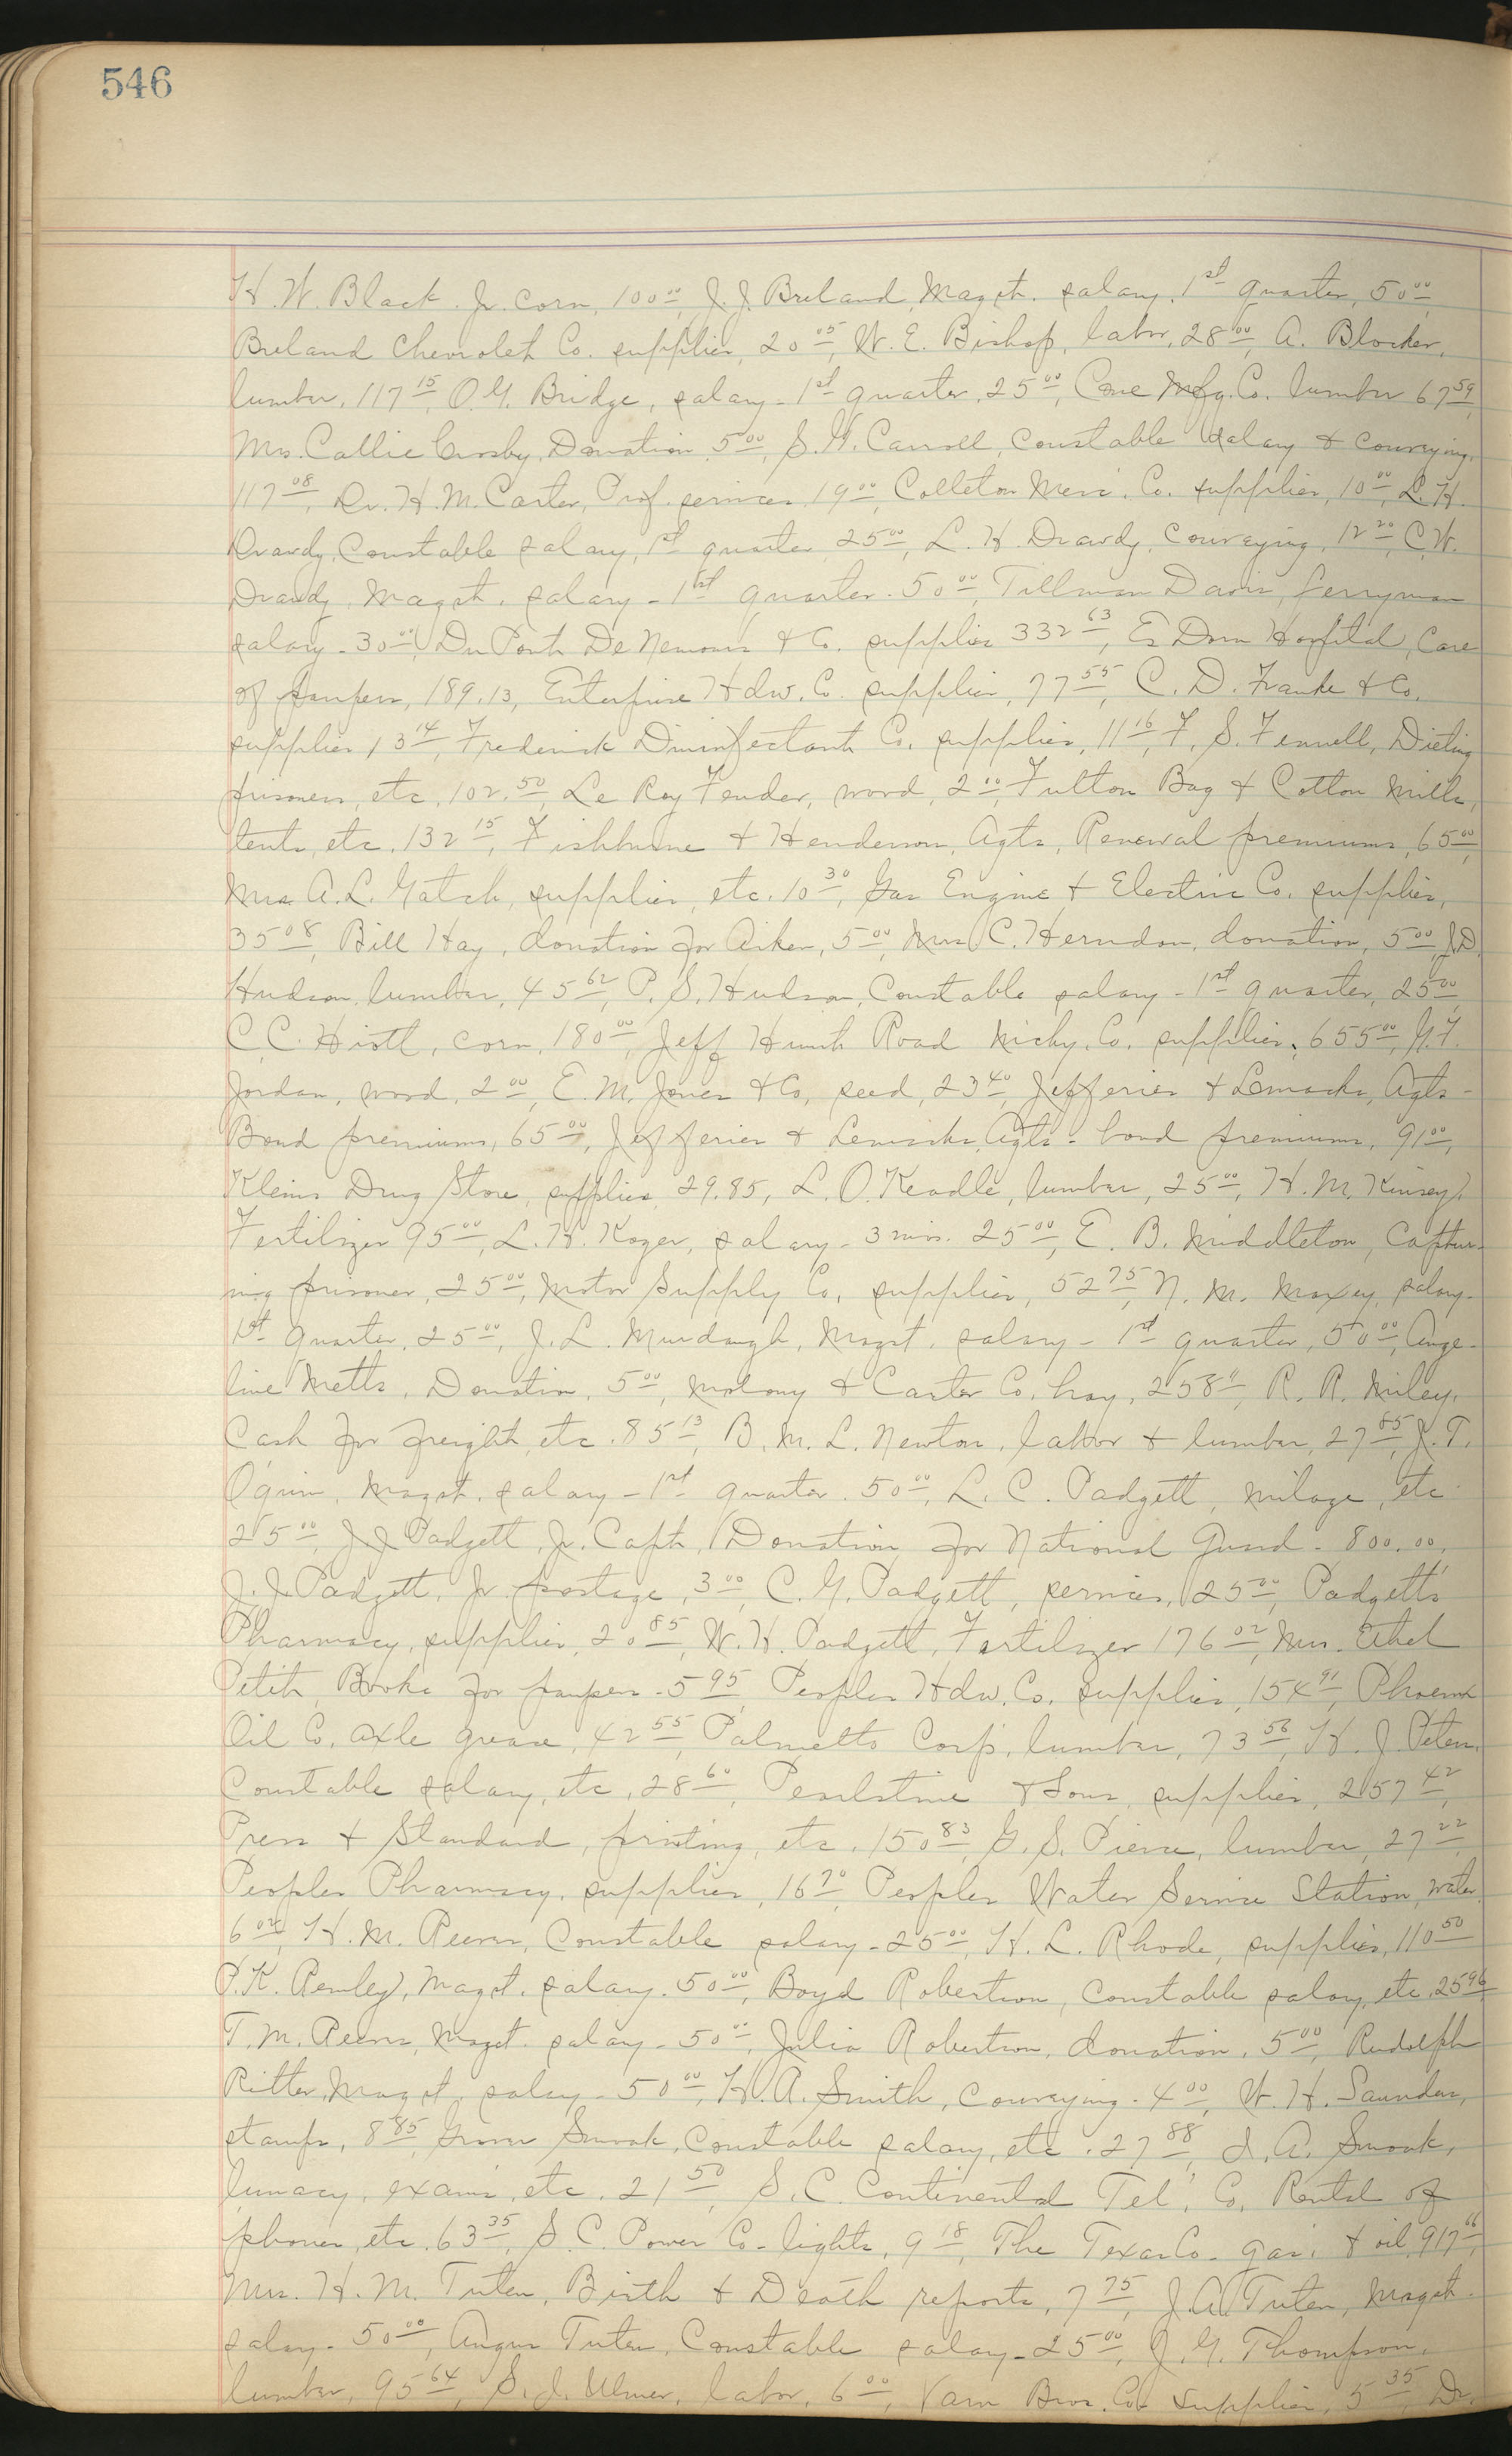 Colleton County Highway Commission Ledger, Page 546